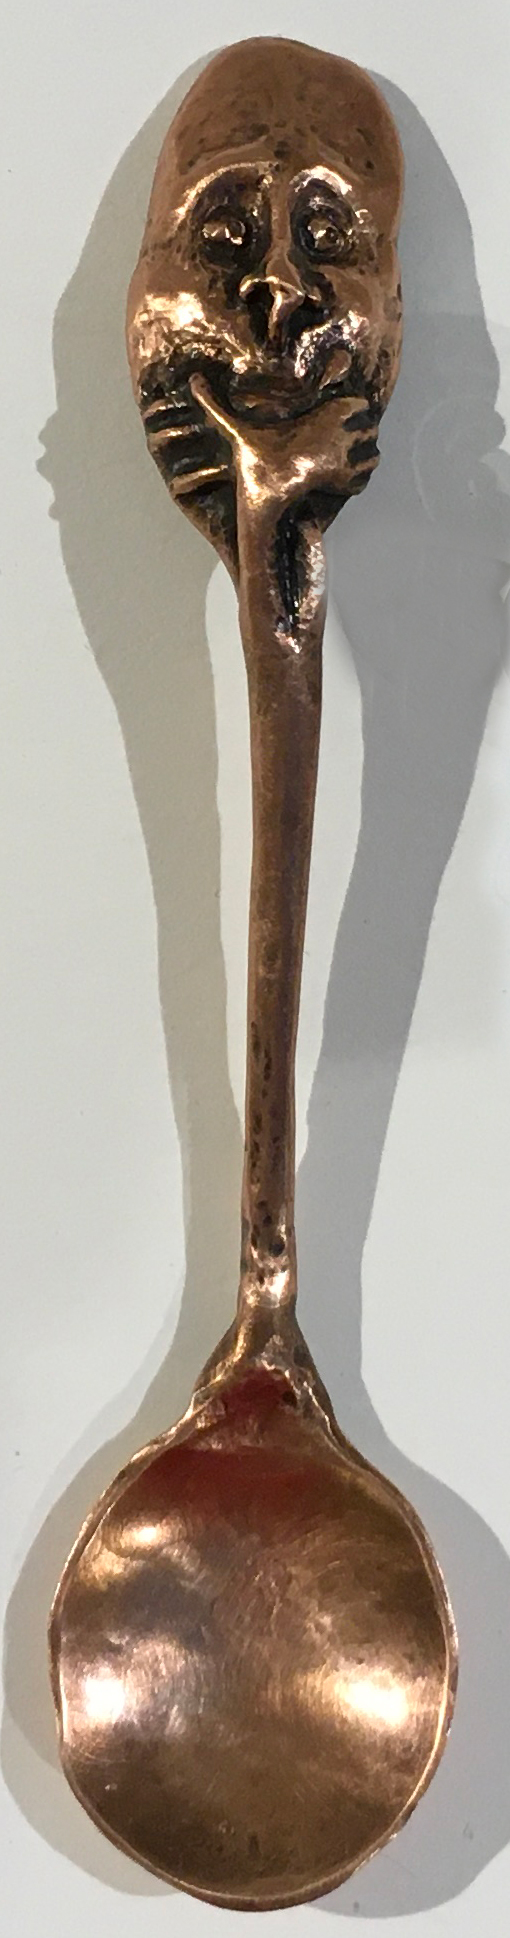 Linda Kelen, Silence, 2018, copper, 5.75 inches, collection of the artist